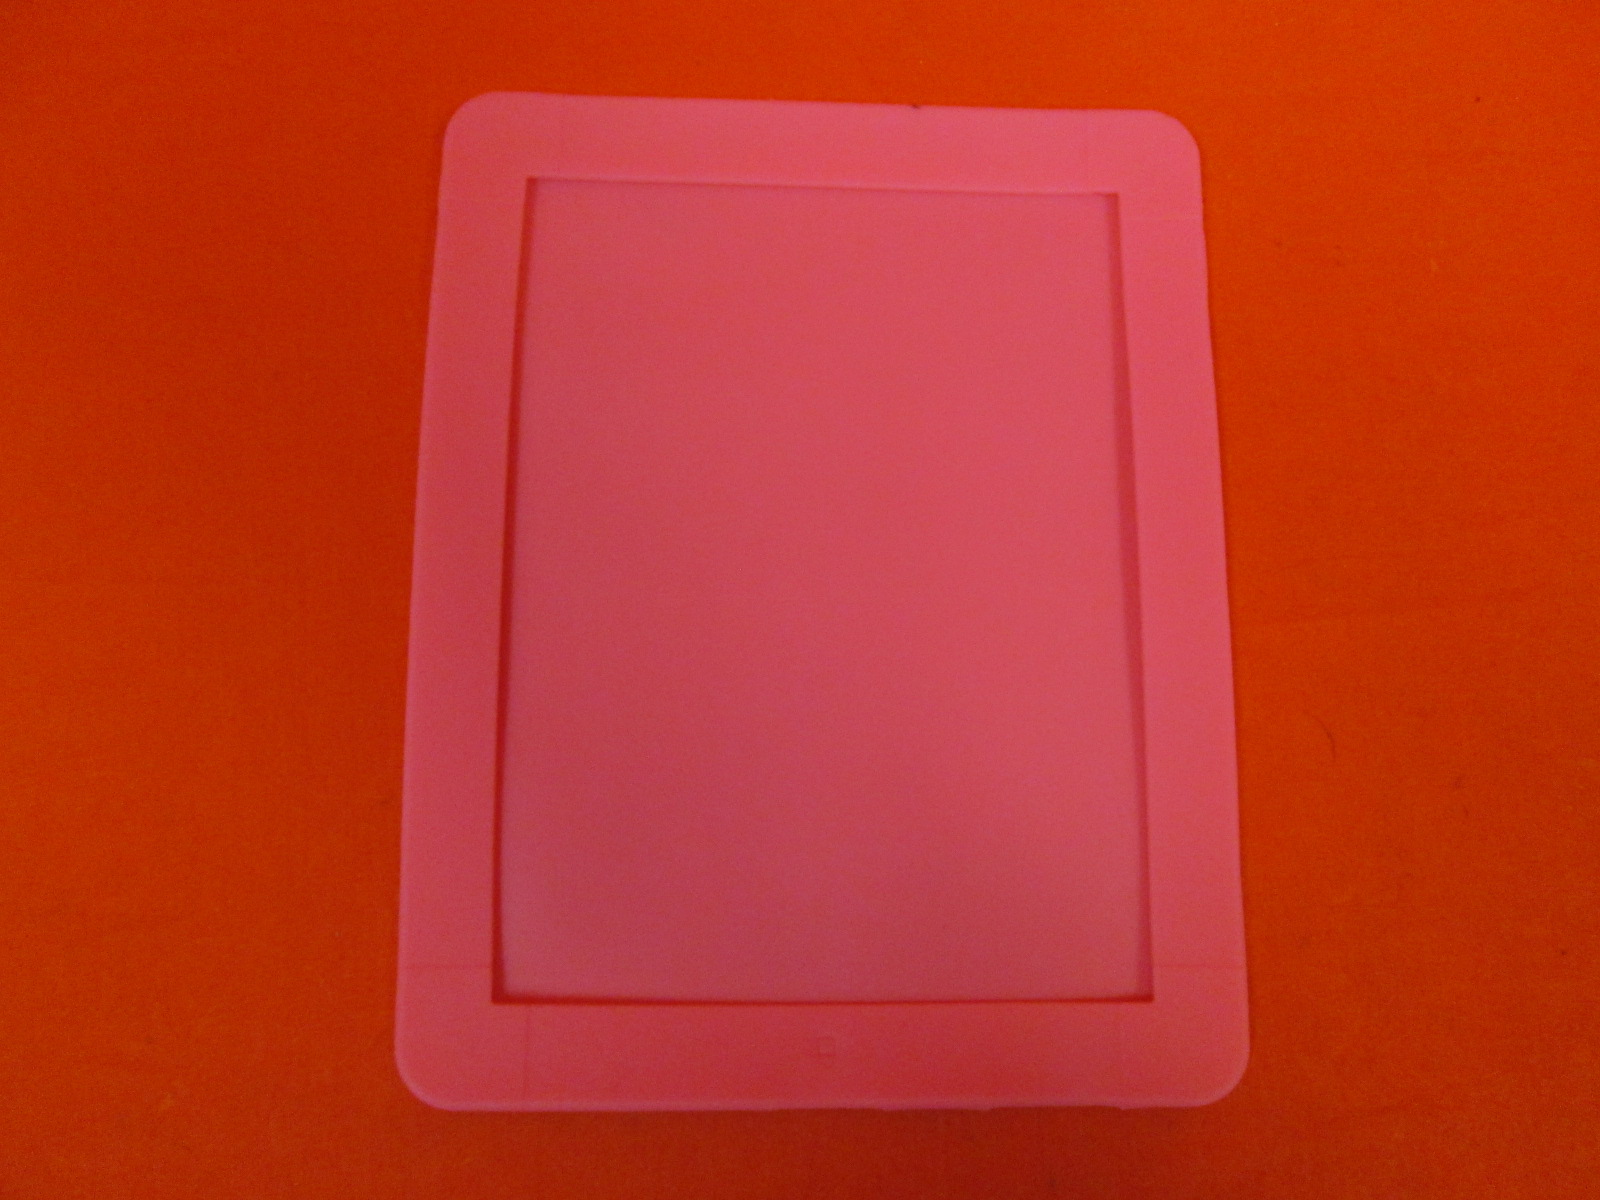 Netbook 12 Inch IP Silicon Case Clear Pink For Tablet